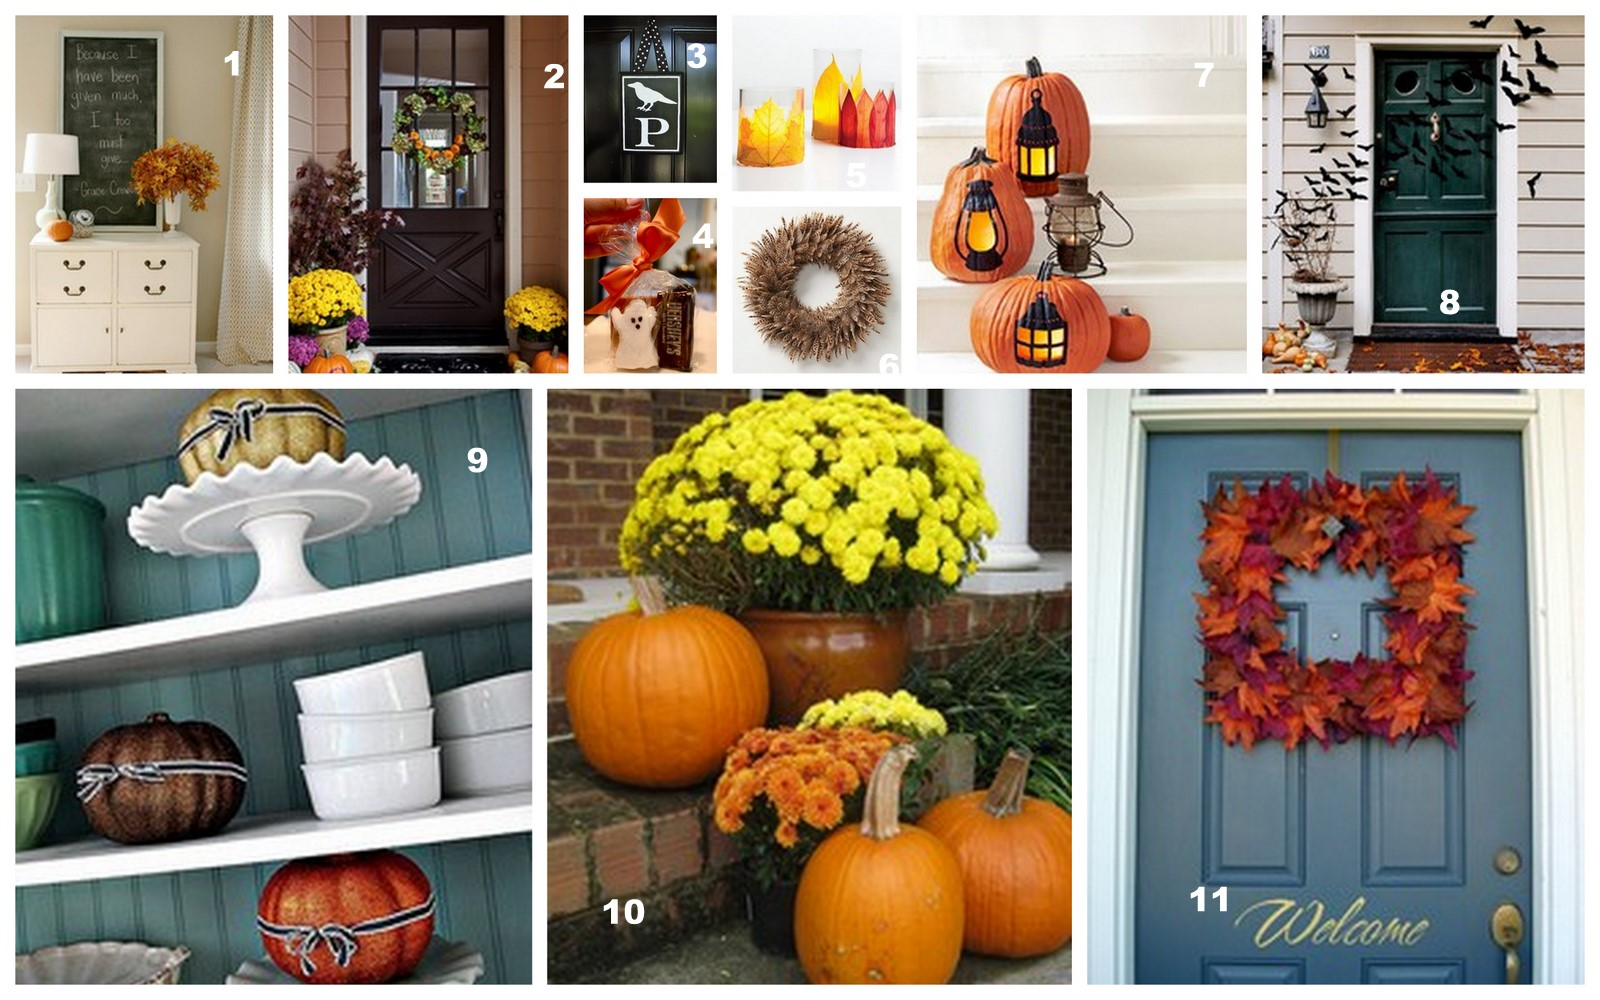 Pinterest home decor ideas fall - Home decor ideas pinterest decoration ...